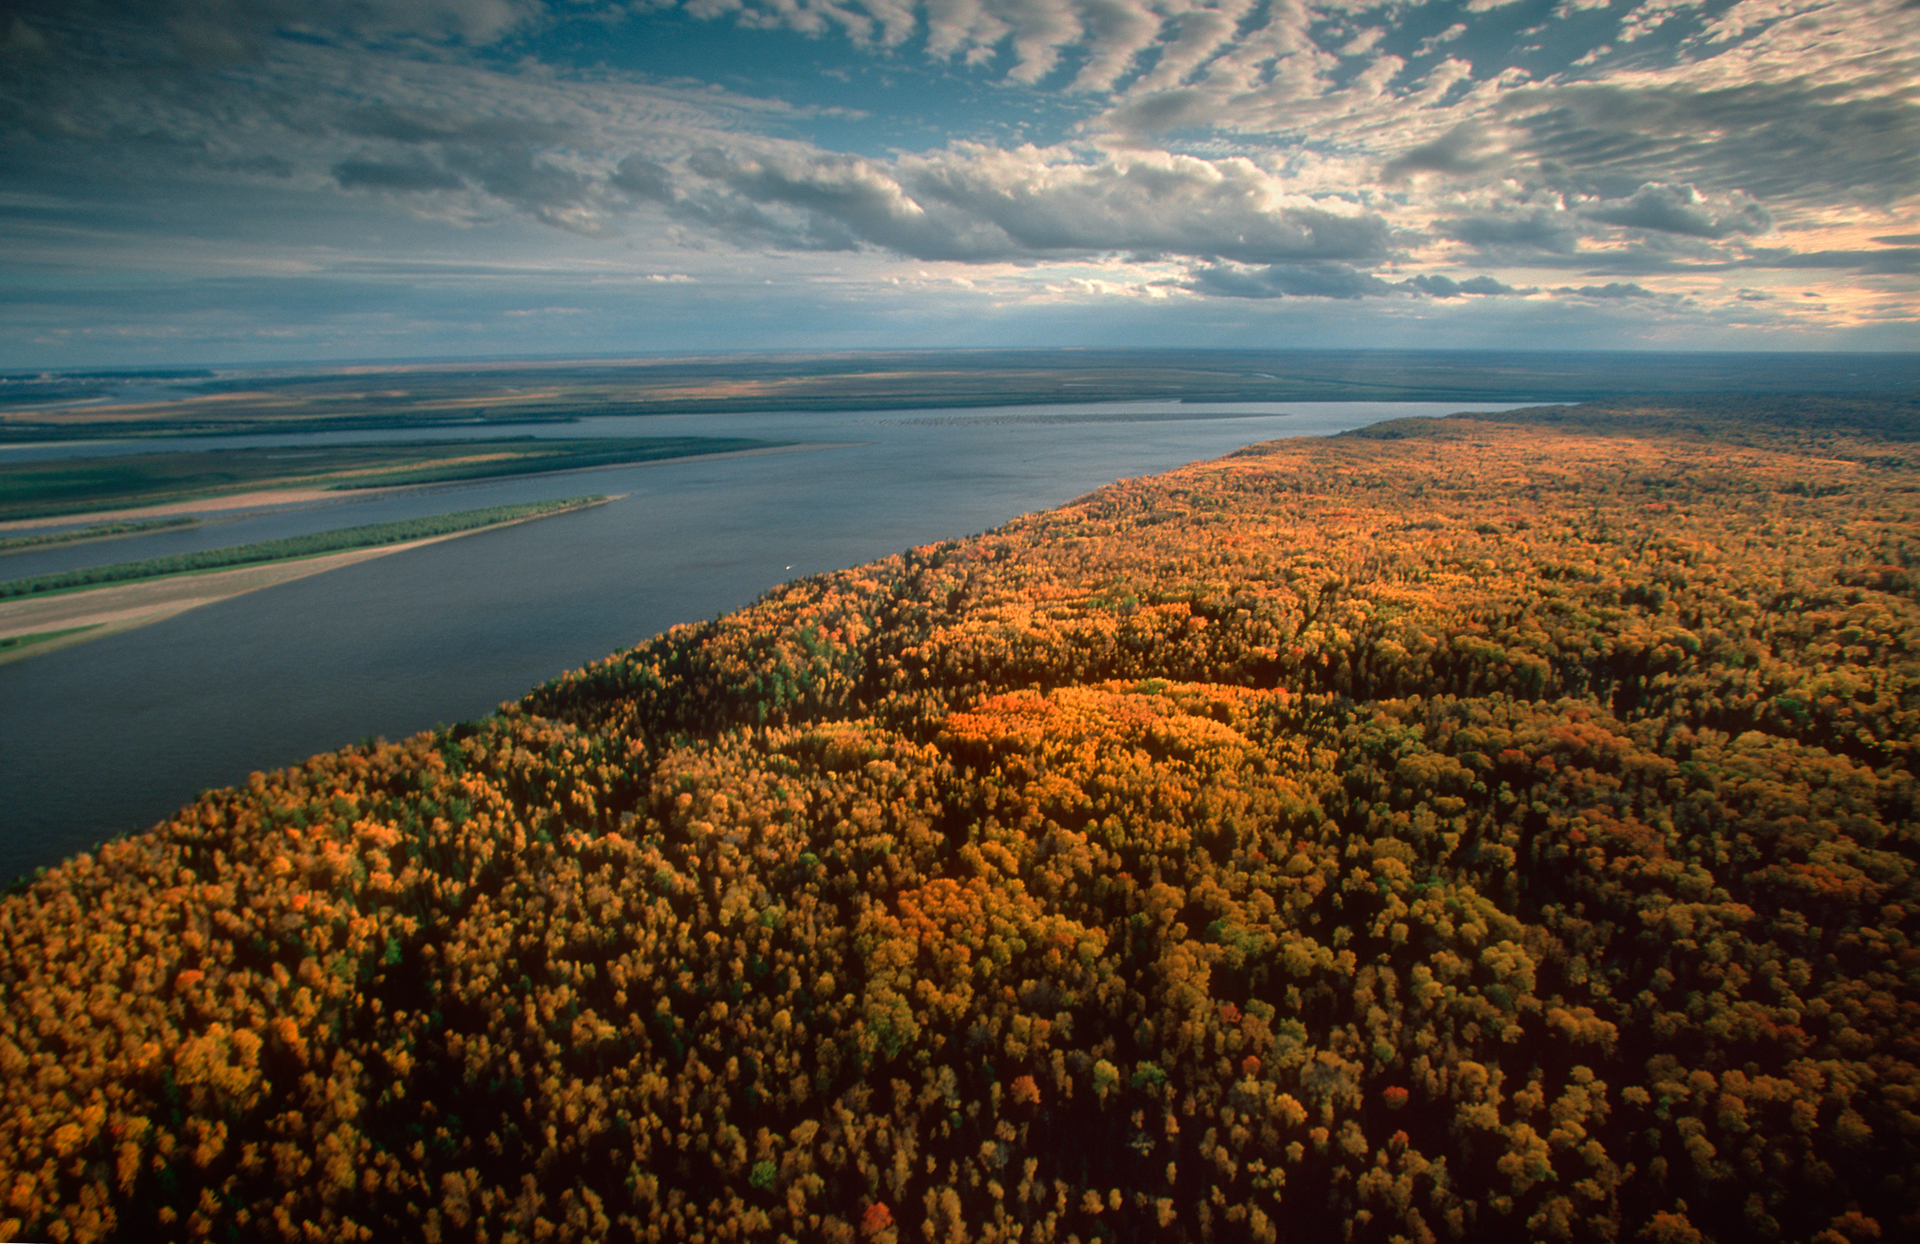 Bering's expedition set up camp at the convergence of the Ob and Irtysh rivers.  Khanty-Mansiysk Region, Russia